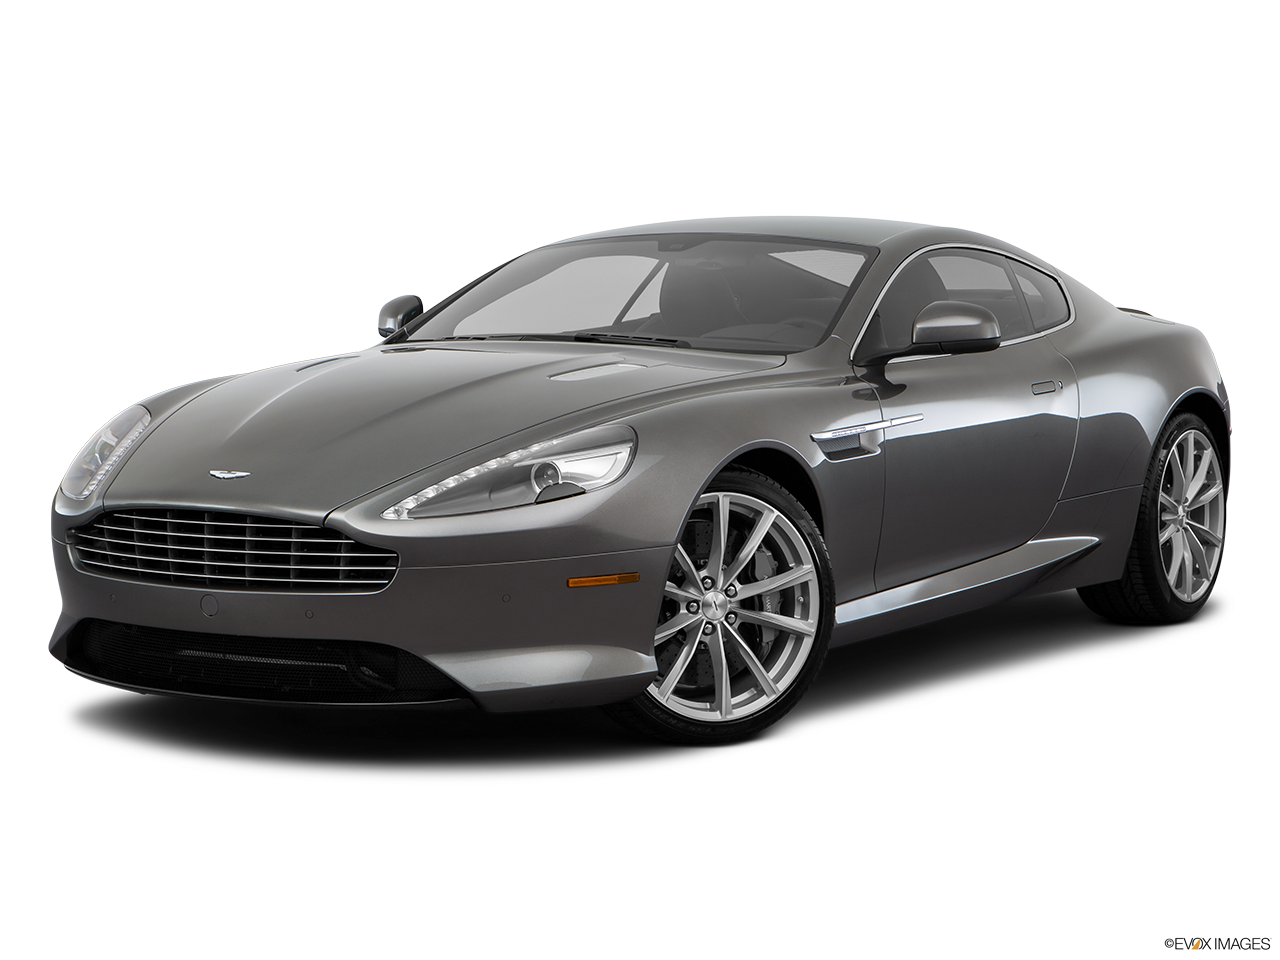 Test Drive A 2016 Aston Martin DB9 at Galpin Aston Martin in Los Angeles